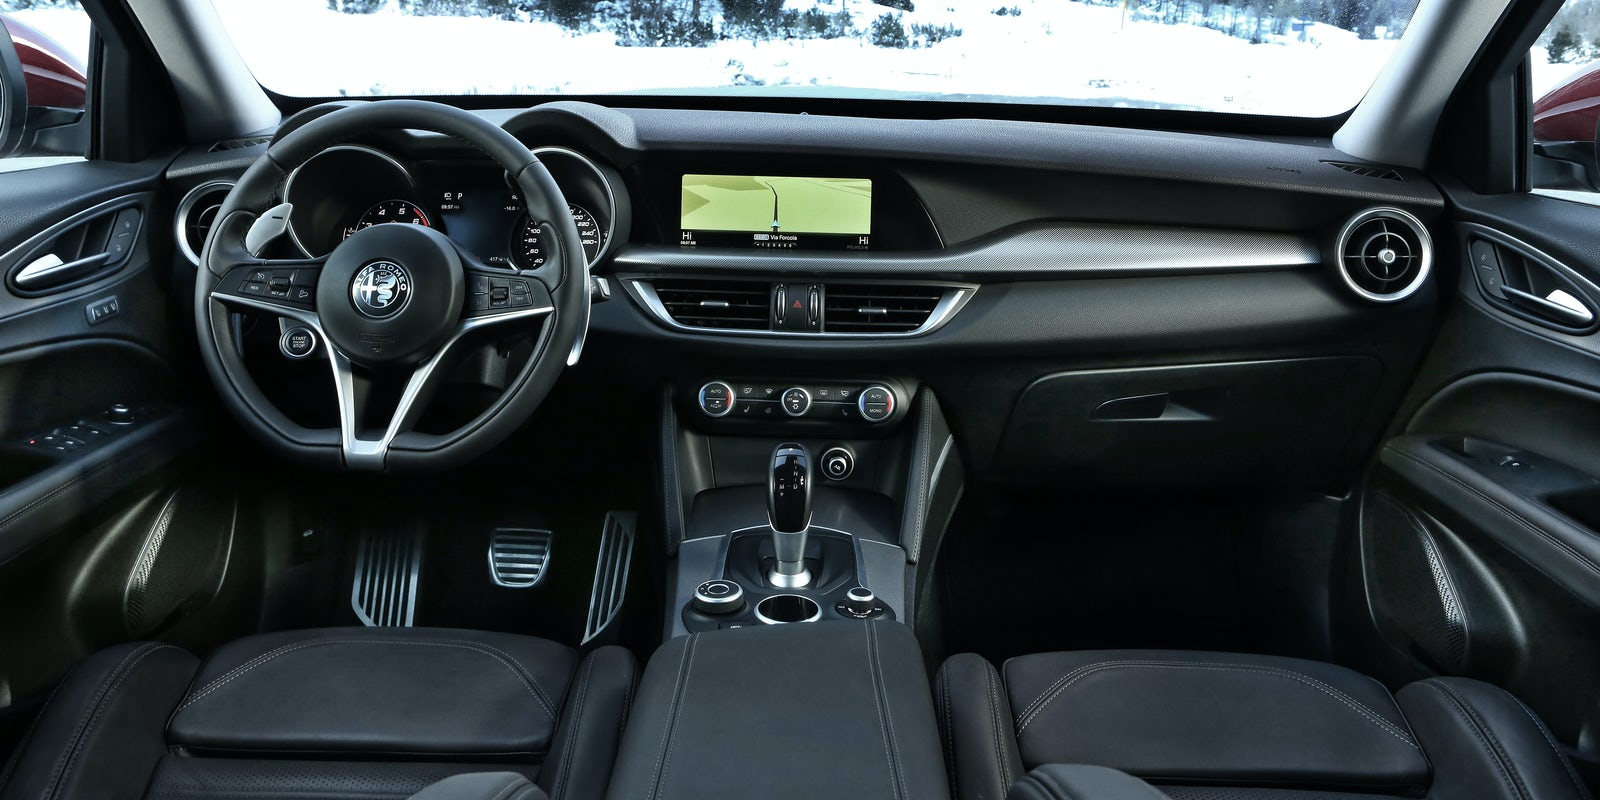 alfa romeo stelvio interior practicality and infotainment. Black Bedroom Furniture Sets. Home Design Ideas